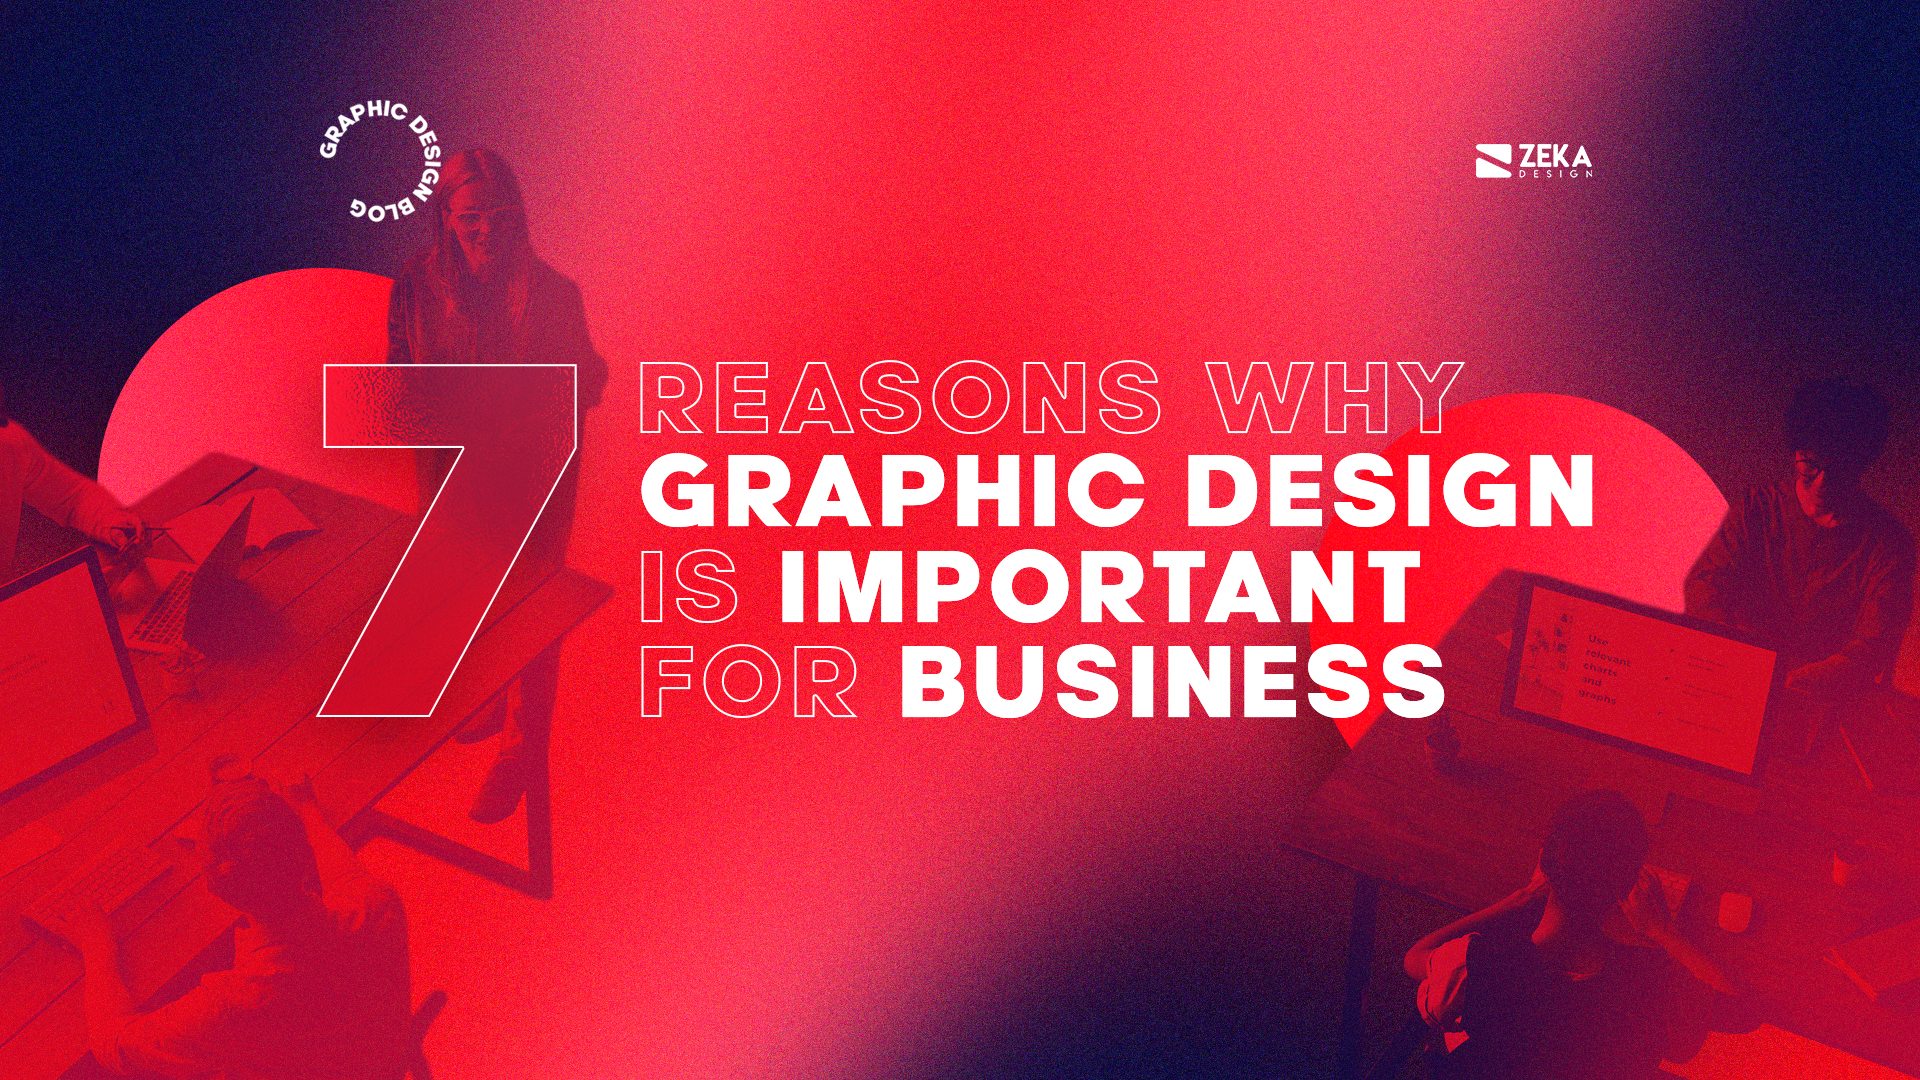 7 Reasons Why Graphic Design Is Important For Business